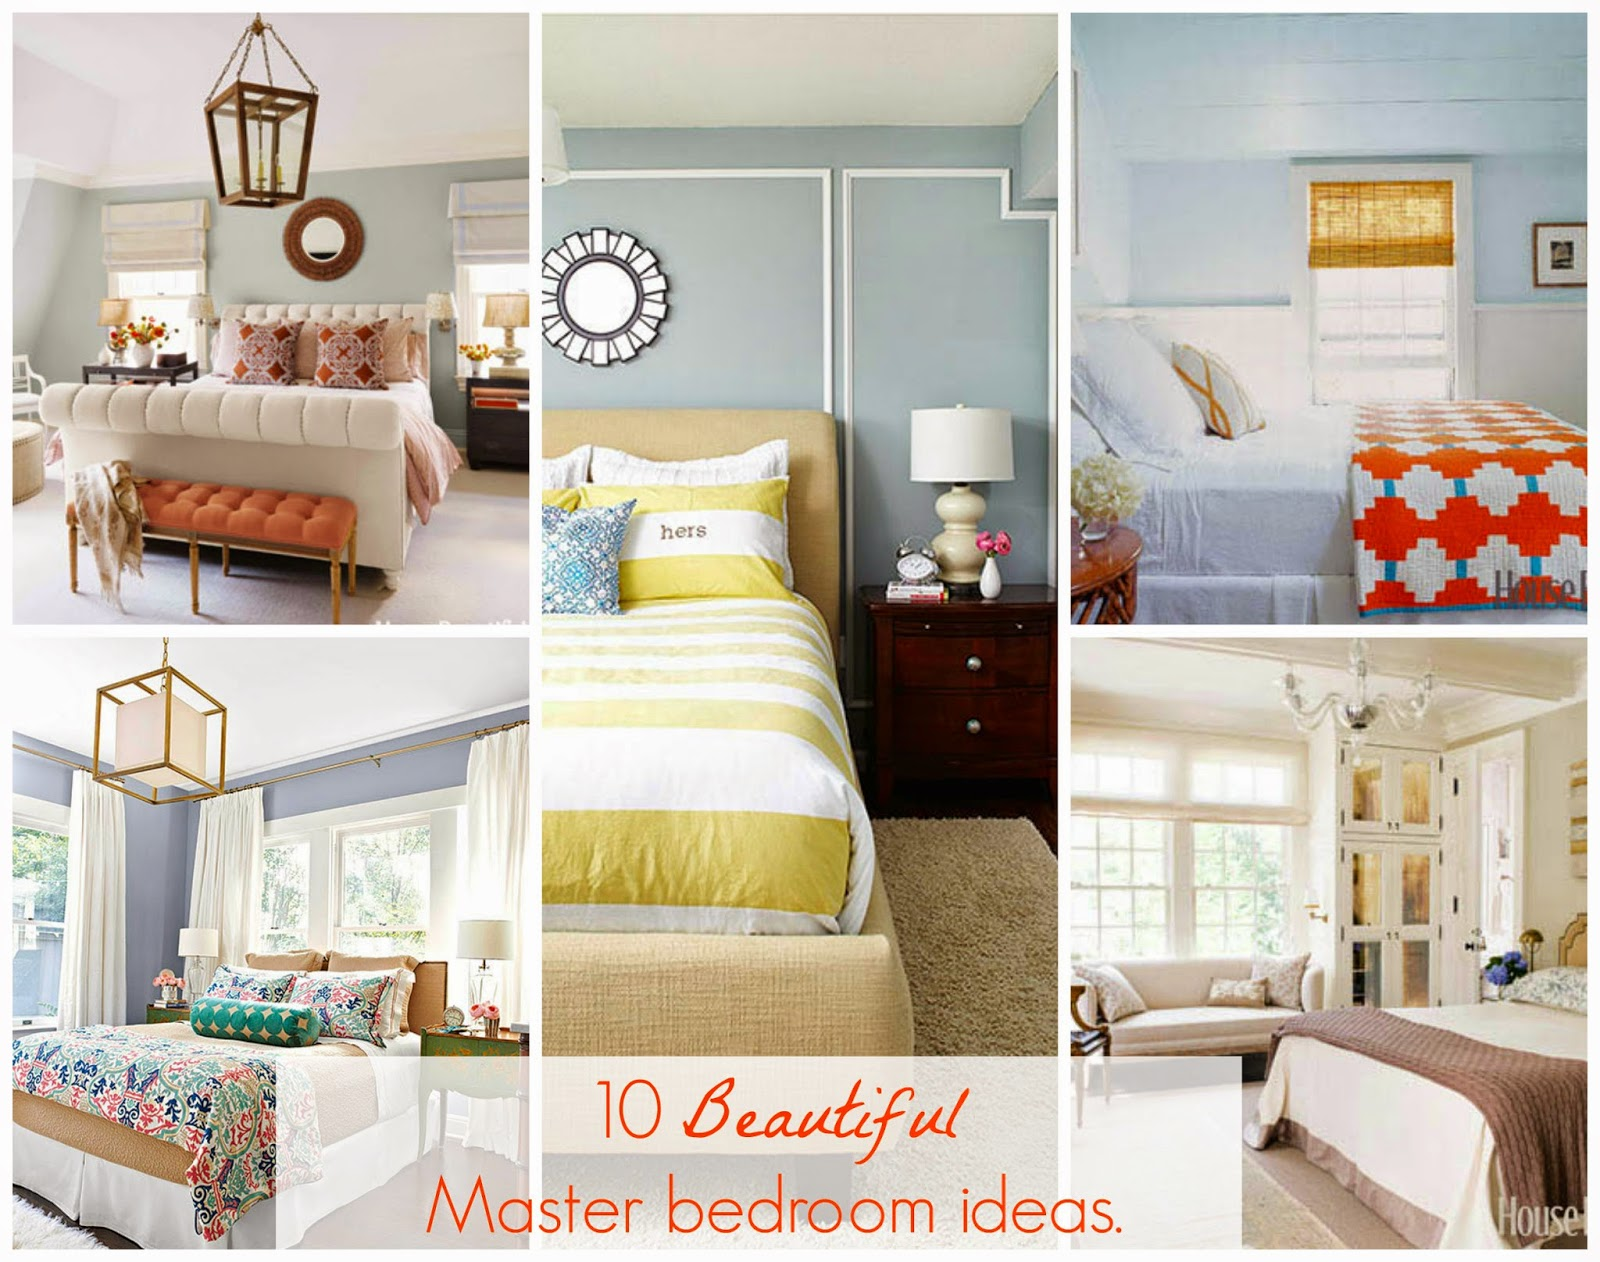 Freshly Completed: 10 BEAUTIFUL Master Bedroom IDEAS